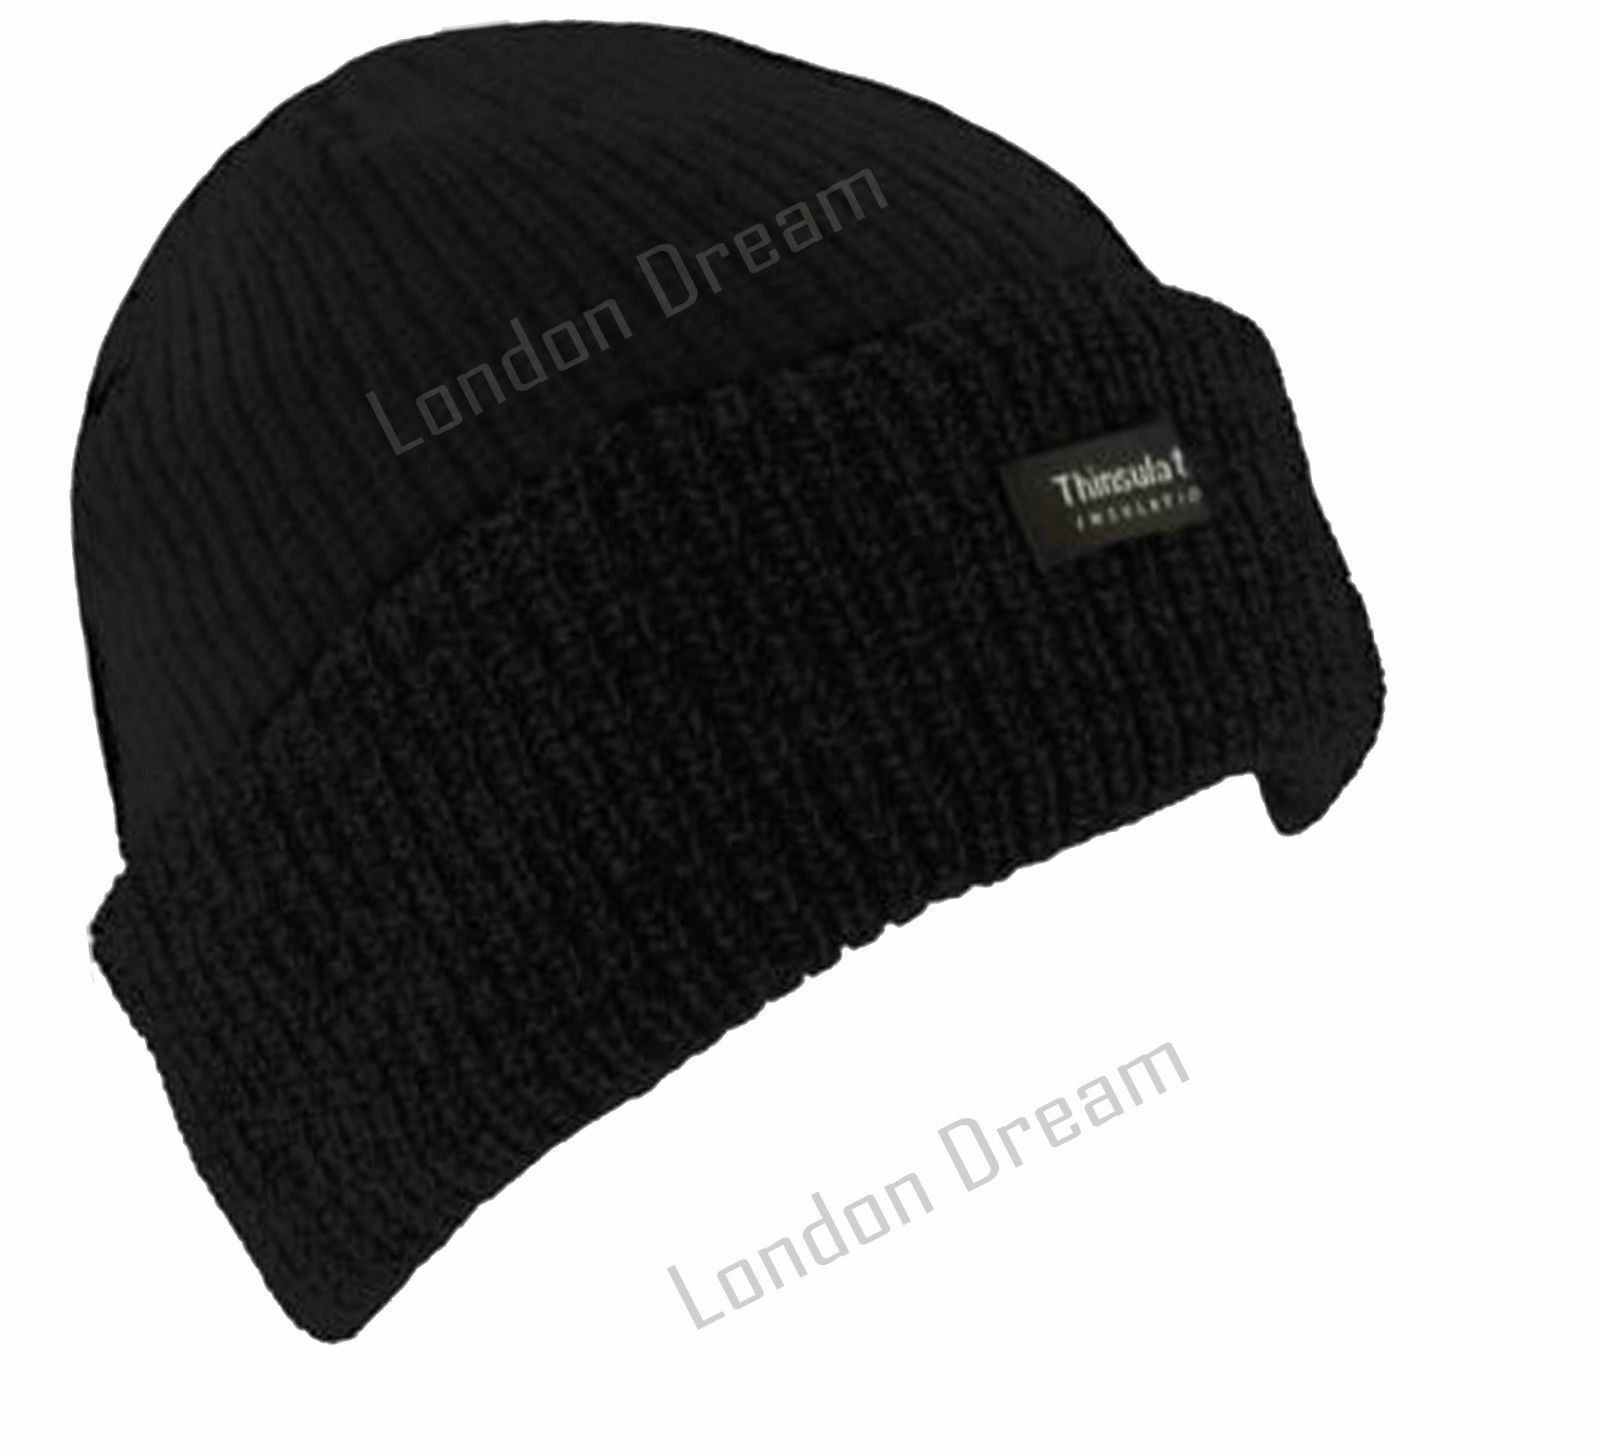 Thinsulate Beanie Hat Knitted Warm Winter Woolly Outdoor Chunky Thermal Ski Hat